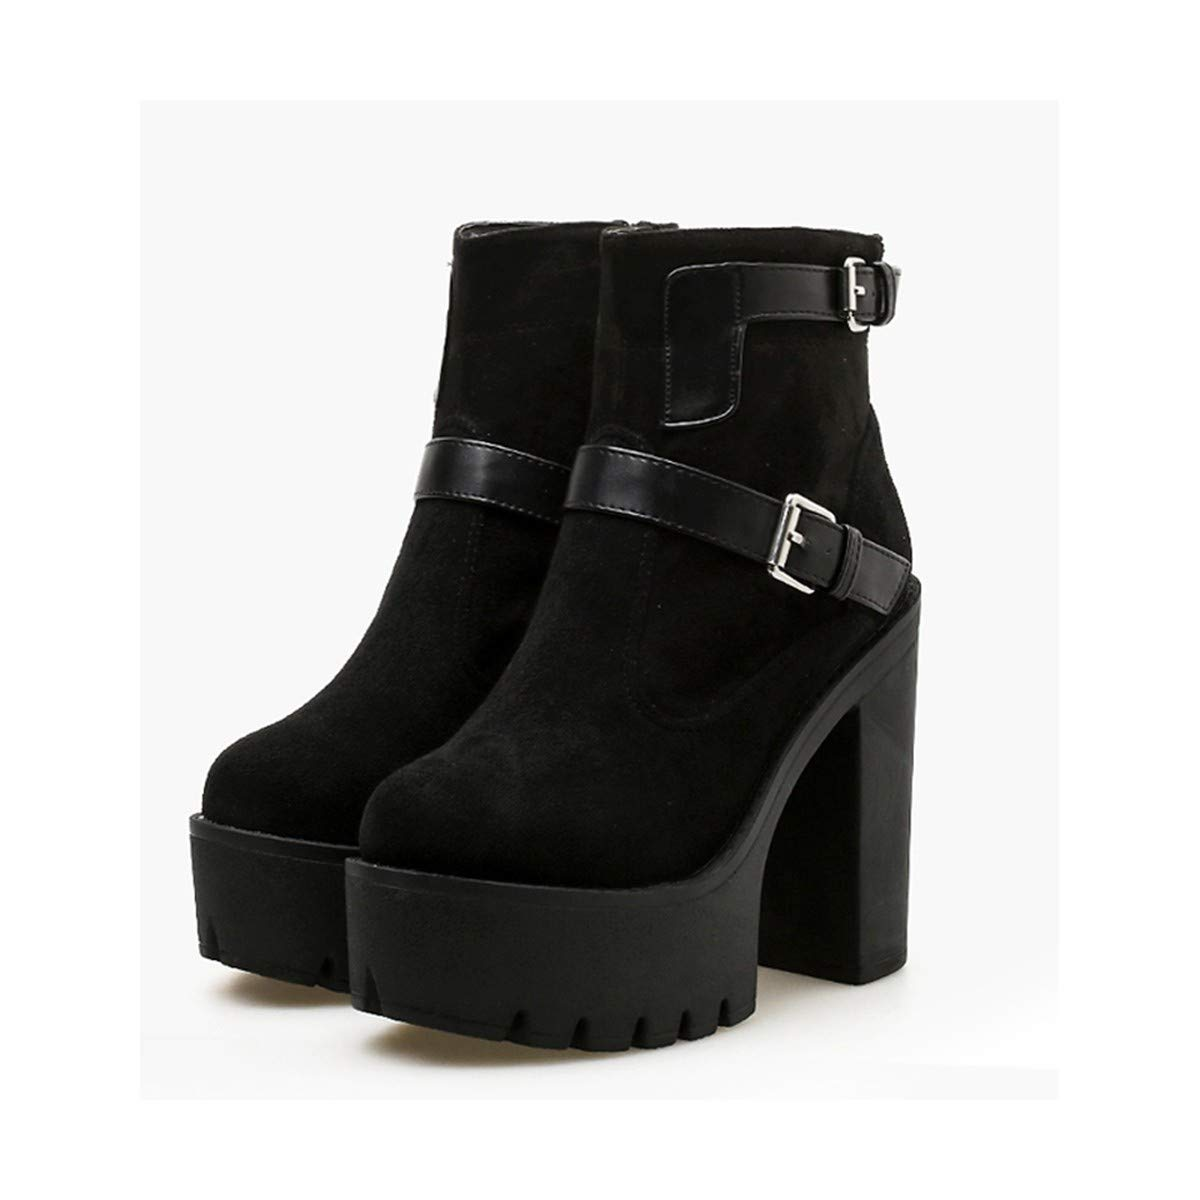 SIKESONG Bout Bottines Femmes Talon Haut Bout SIKESONG Rond Fermeture Éclair Dos Bottes Femmes Chaussures Femmes Flock Bottes Courtes Femmes Yma484B07KF7R81LParent 174392